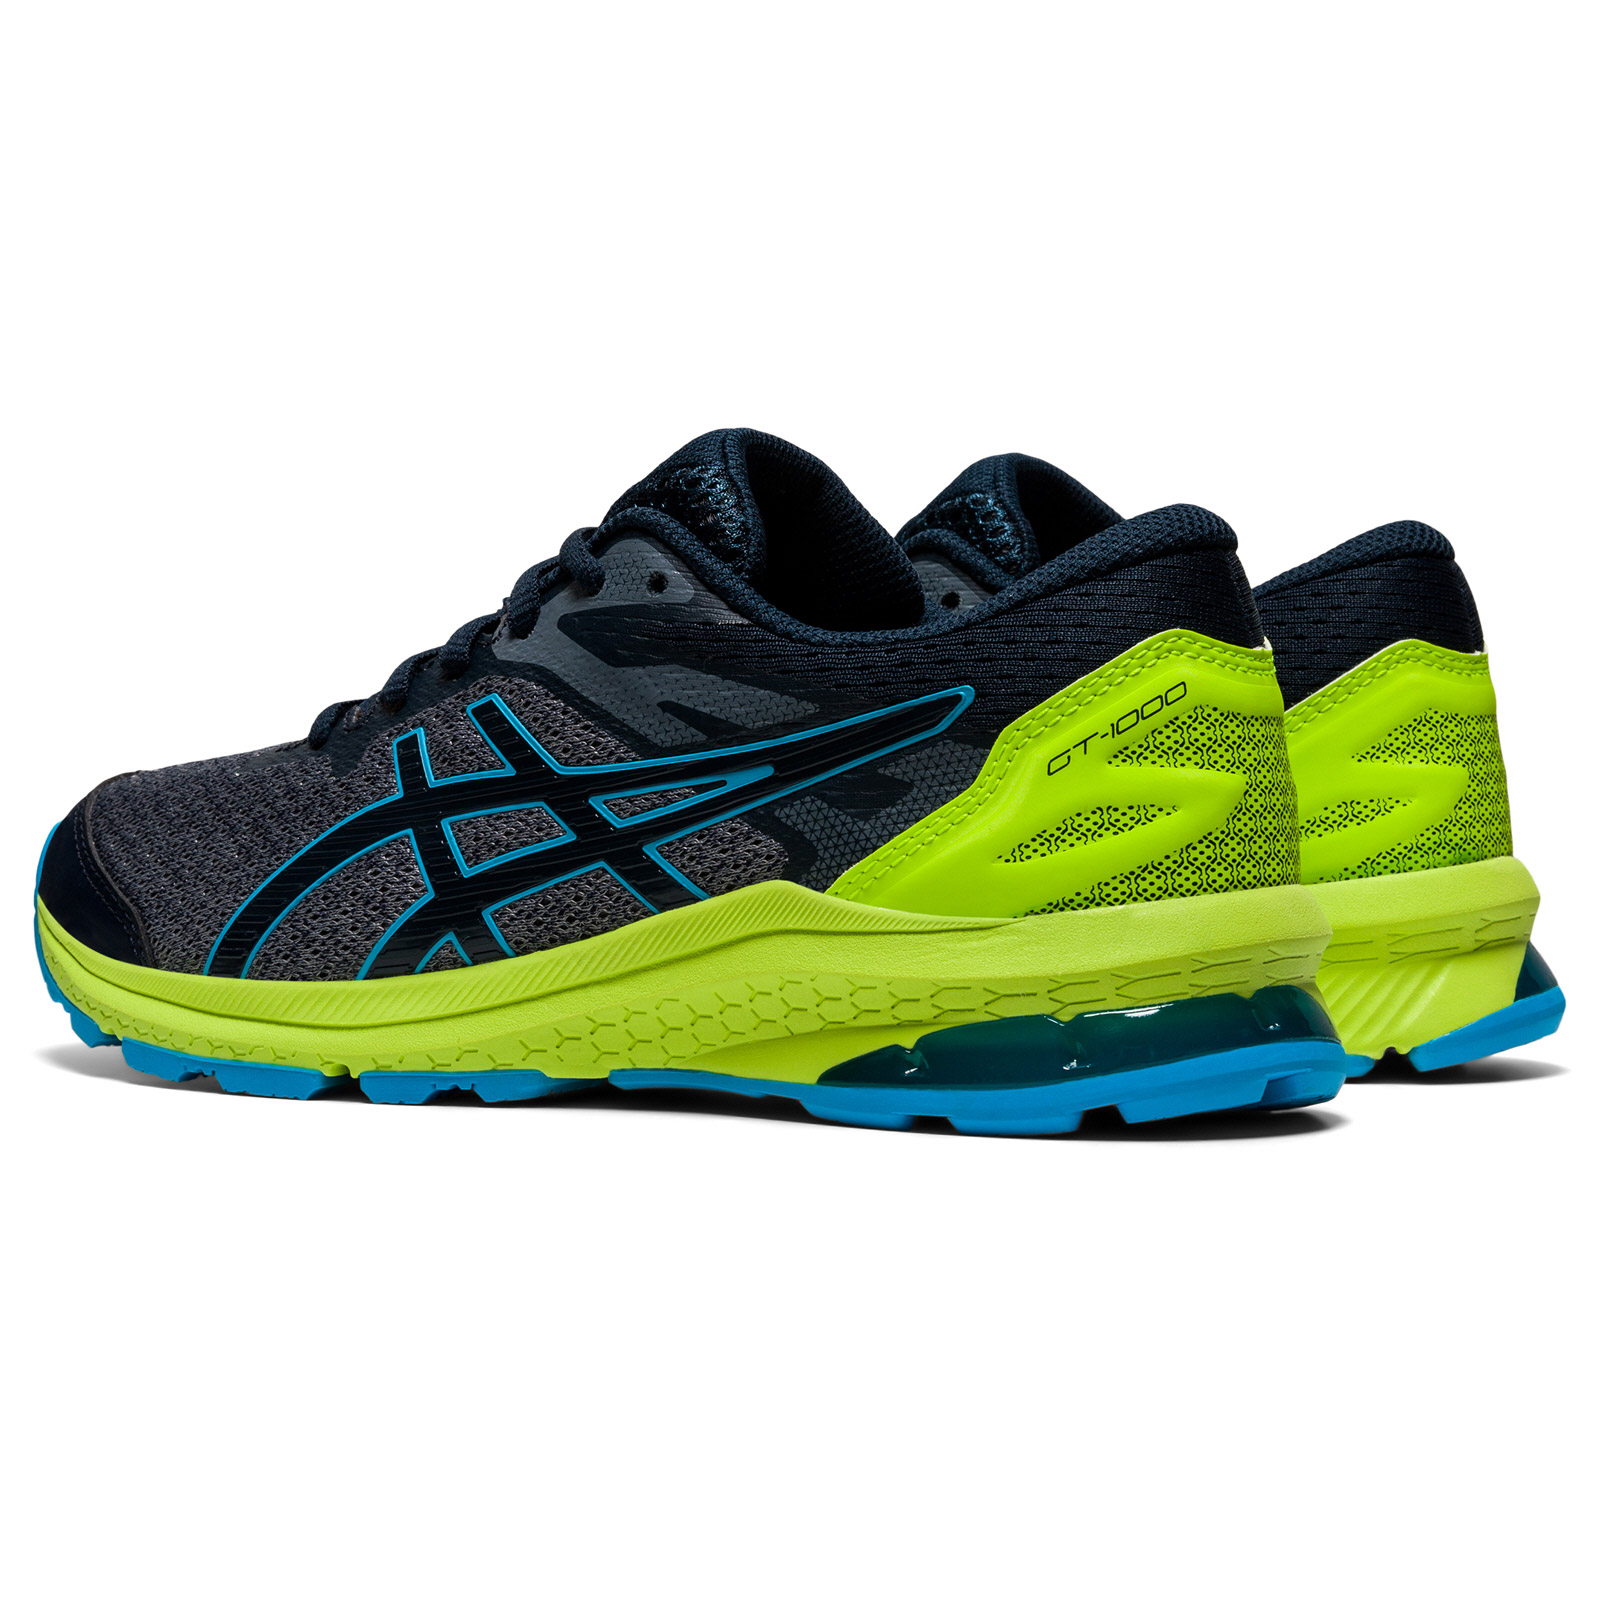 Asics GT-1000 10 Boys' Running Shoe Navy